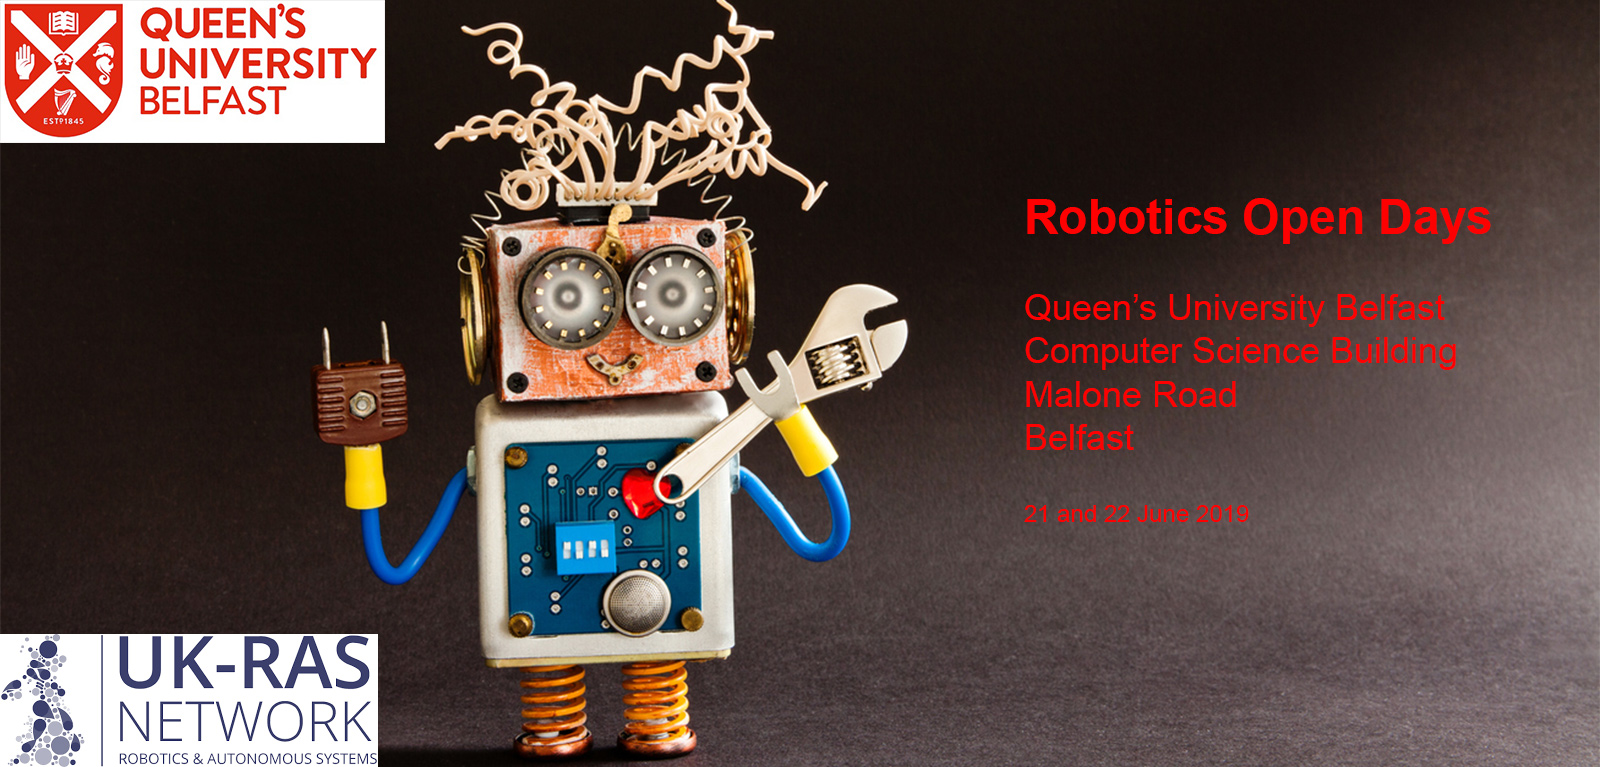 Event image for Robotics Open Days 2019